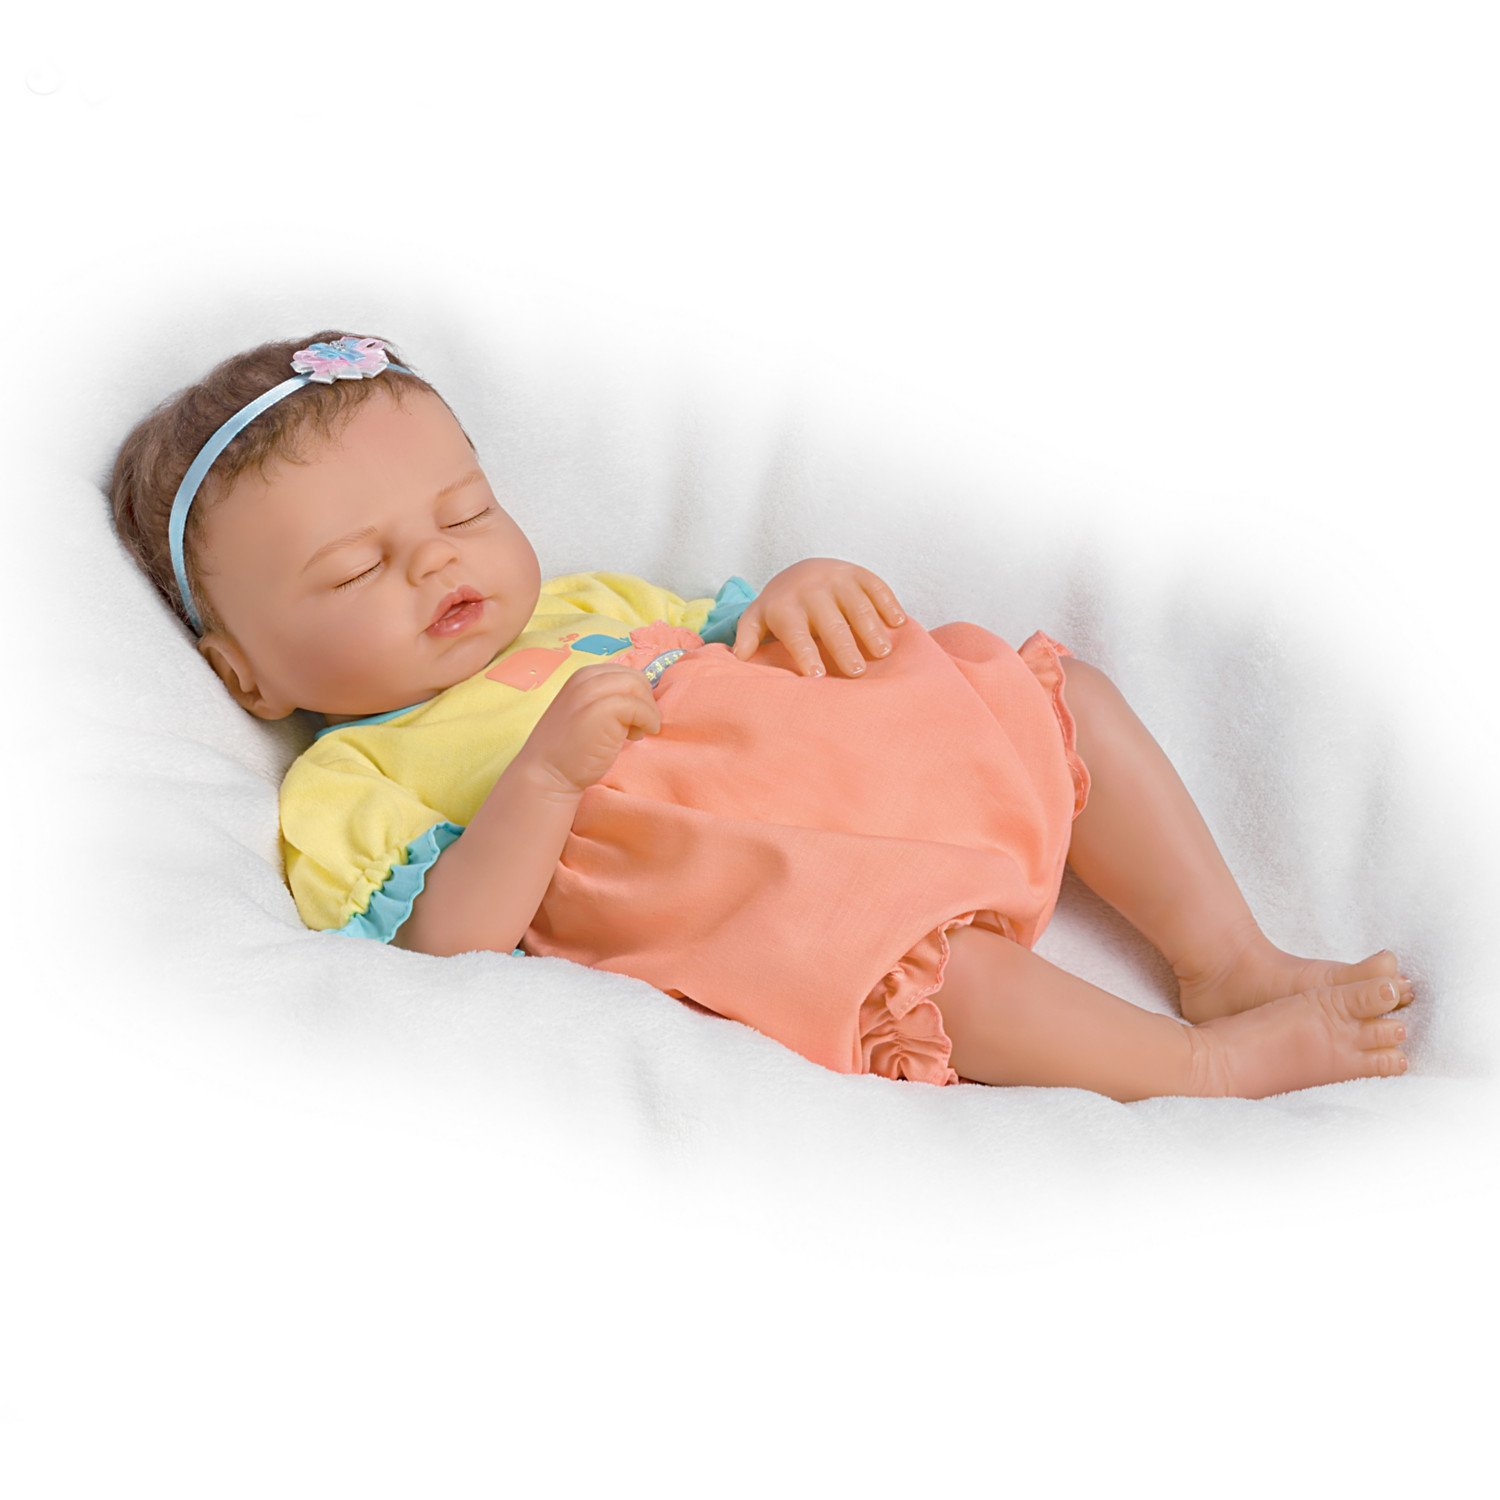 Baby of Mine So Truly Real® Lifelike & Realistic Weighted Newborn Baby Doll 17-inches by The Ashton-Drake Galleries by The Ashton-Drake Galleries